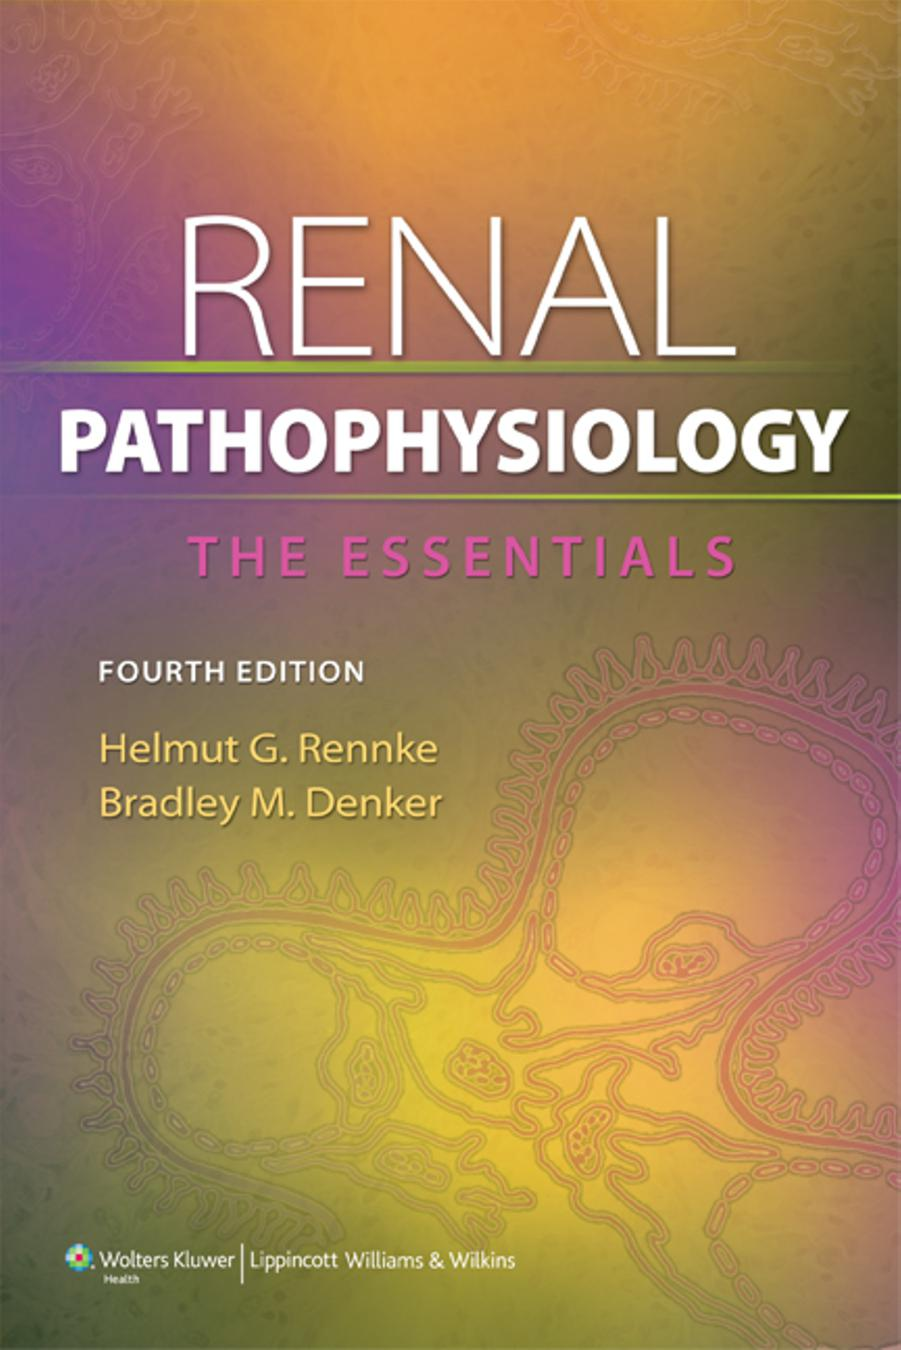 renal pathophysiology the essentials 4th edition pdf